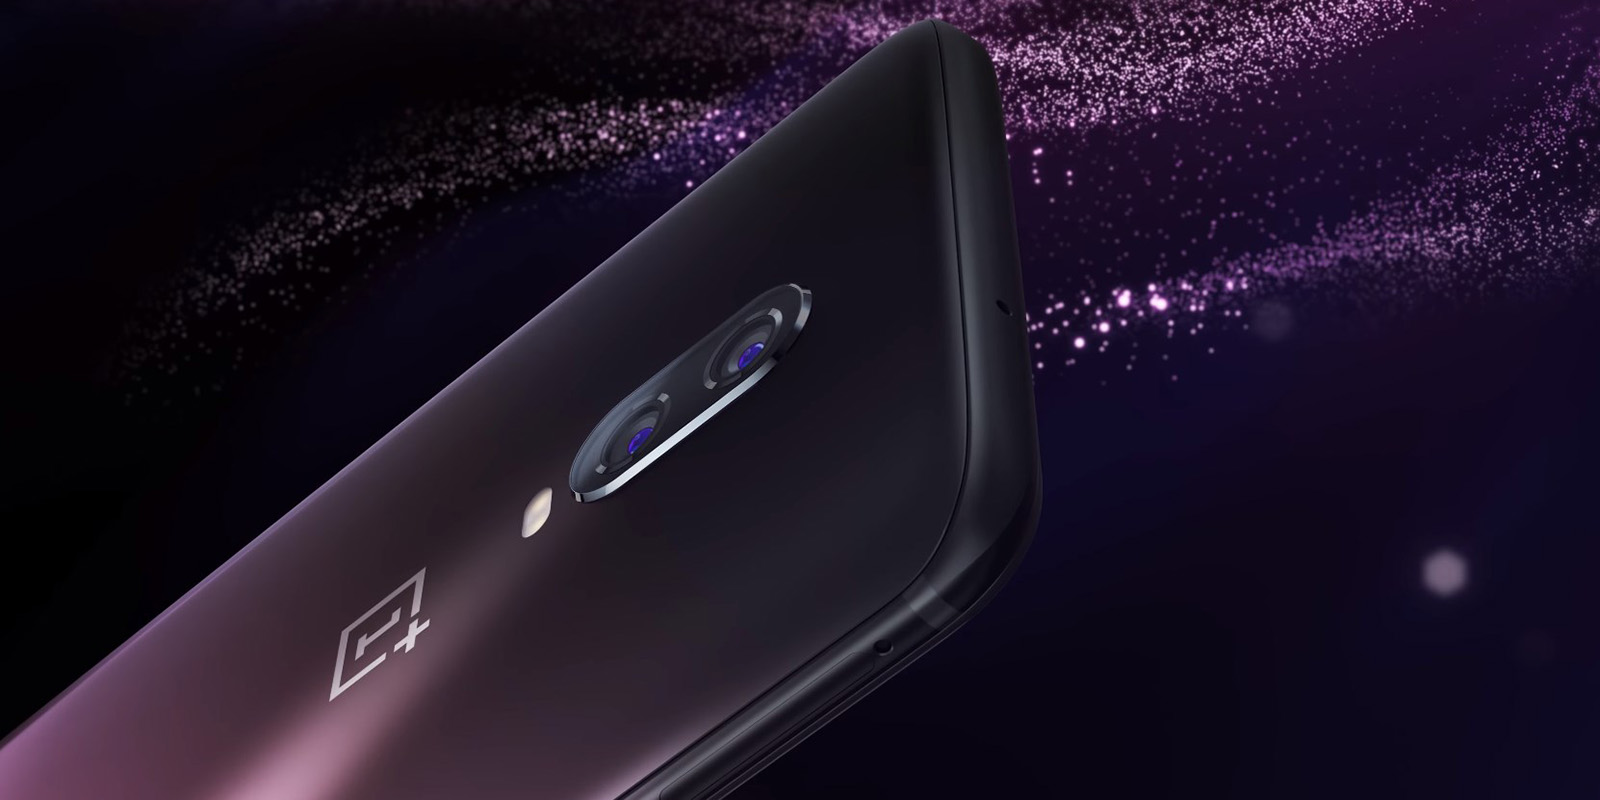 OnePlus 6T in Thunder Purple now available for $579